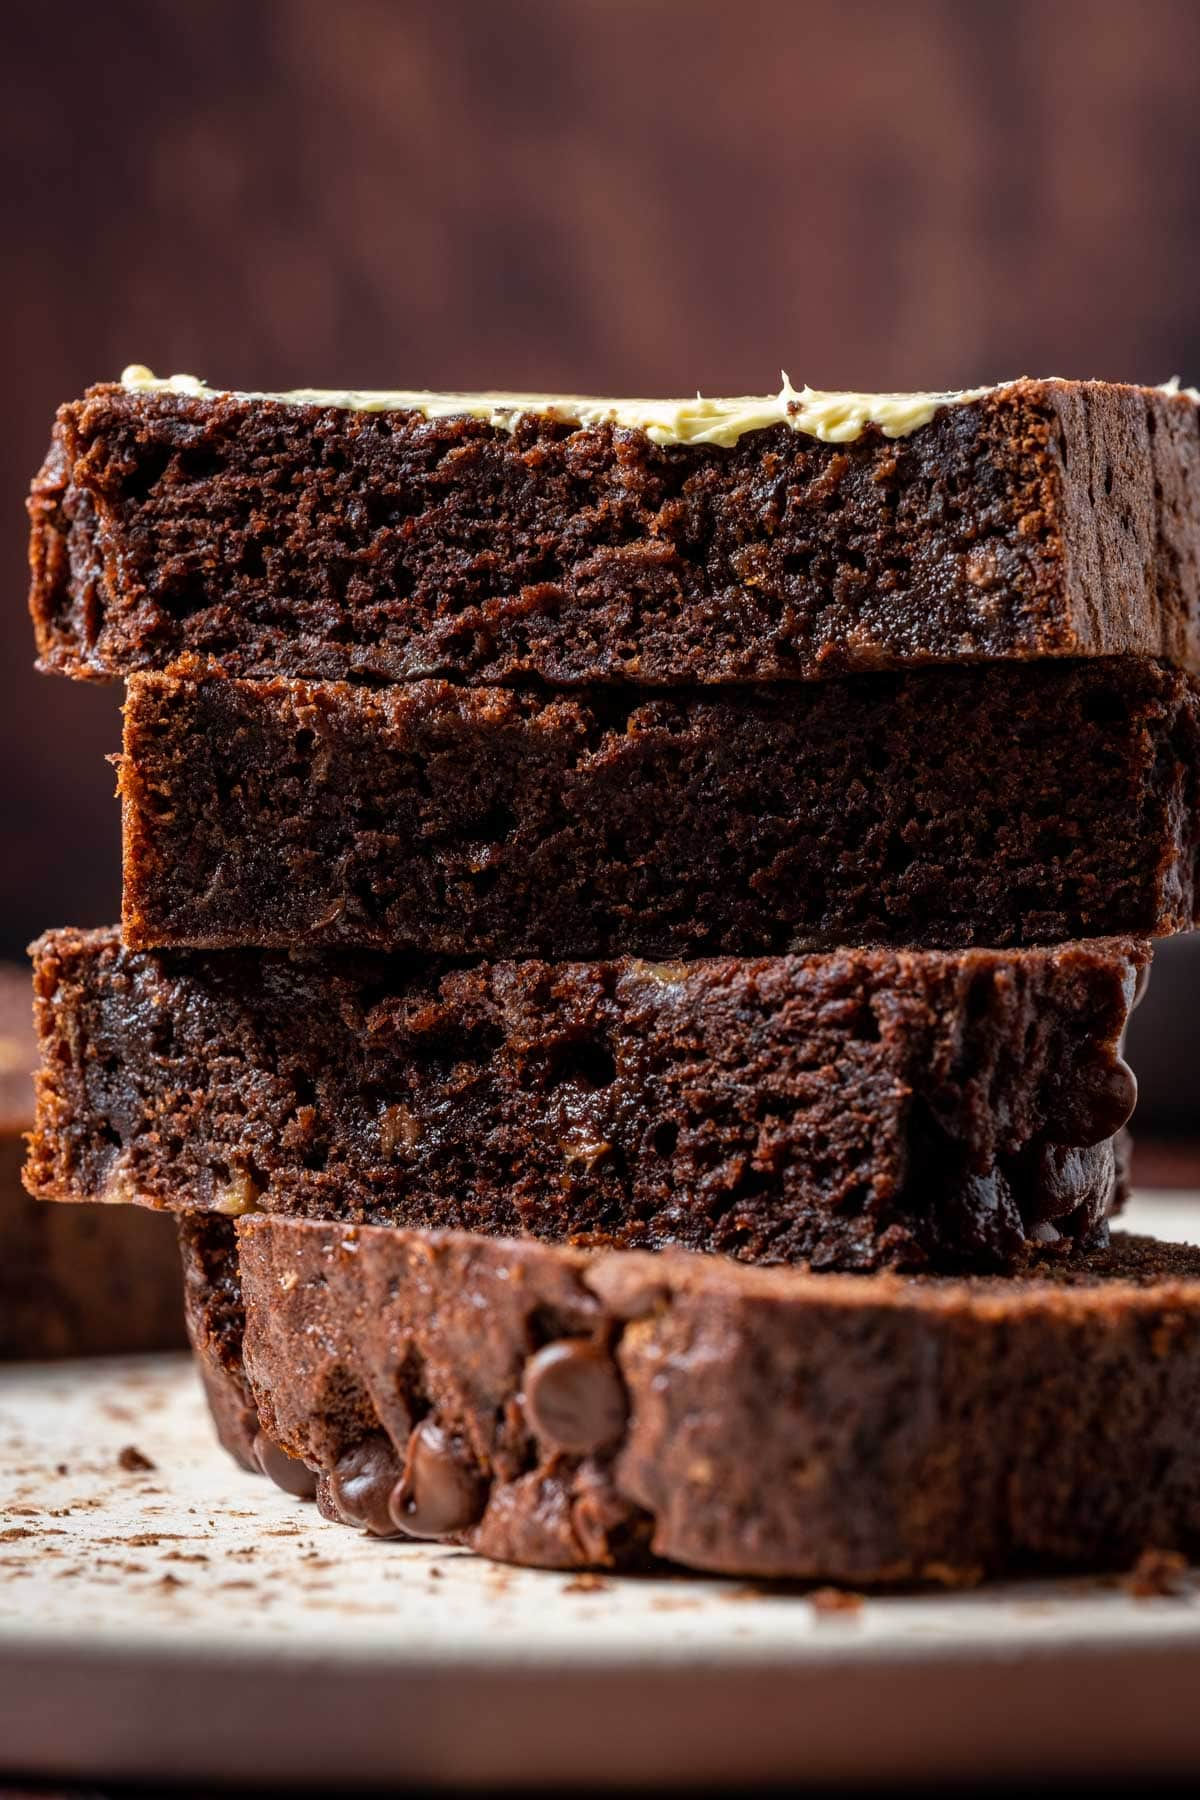 Slices of double chocolate banana bread stacked up on a white plate.